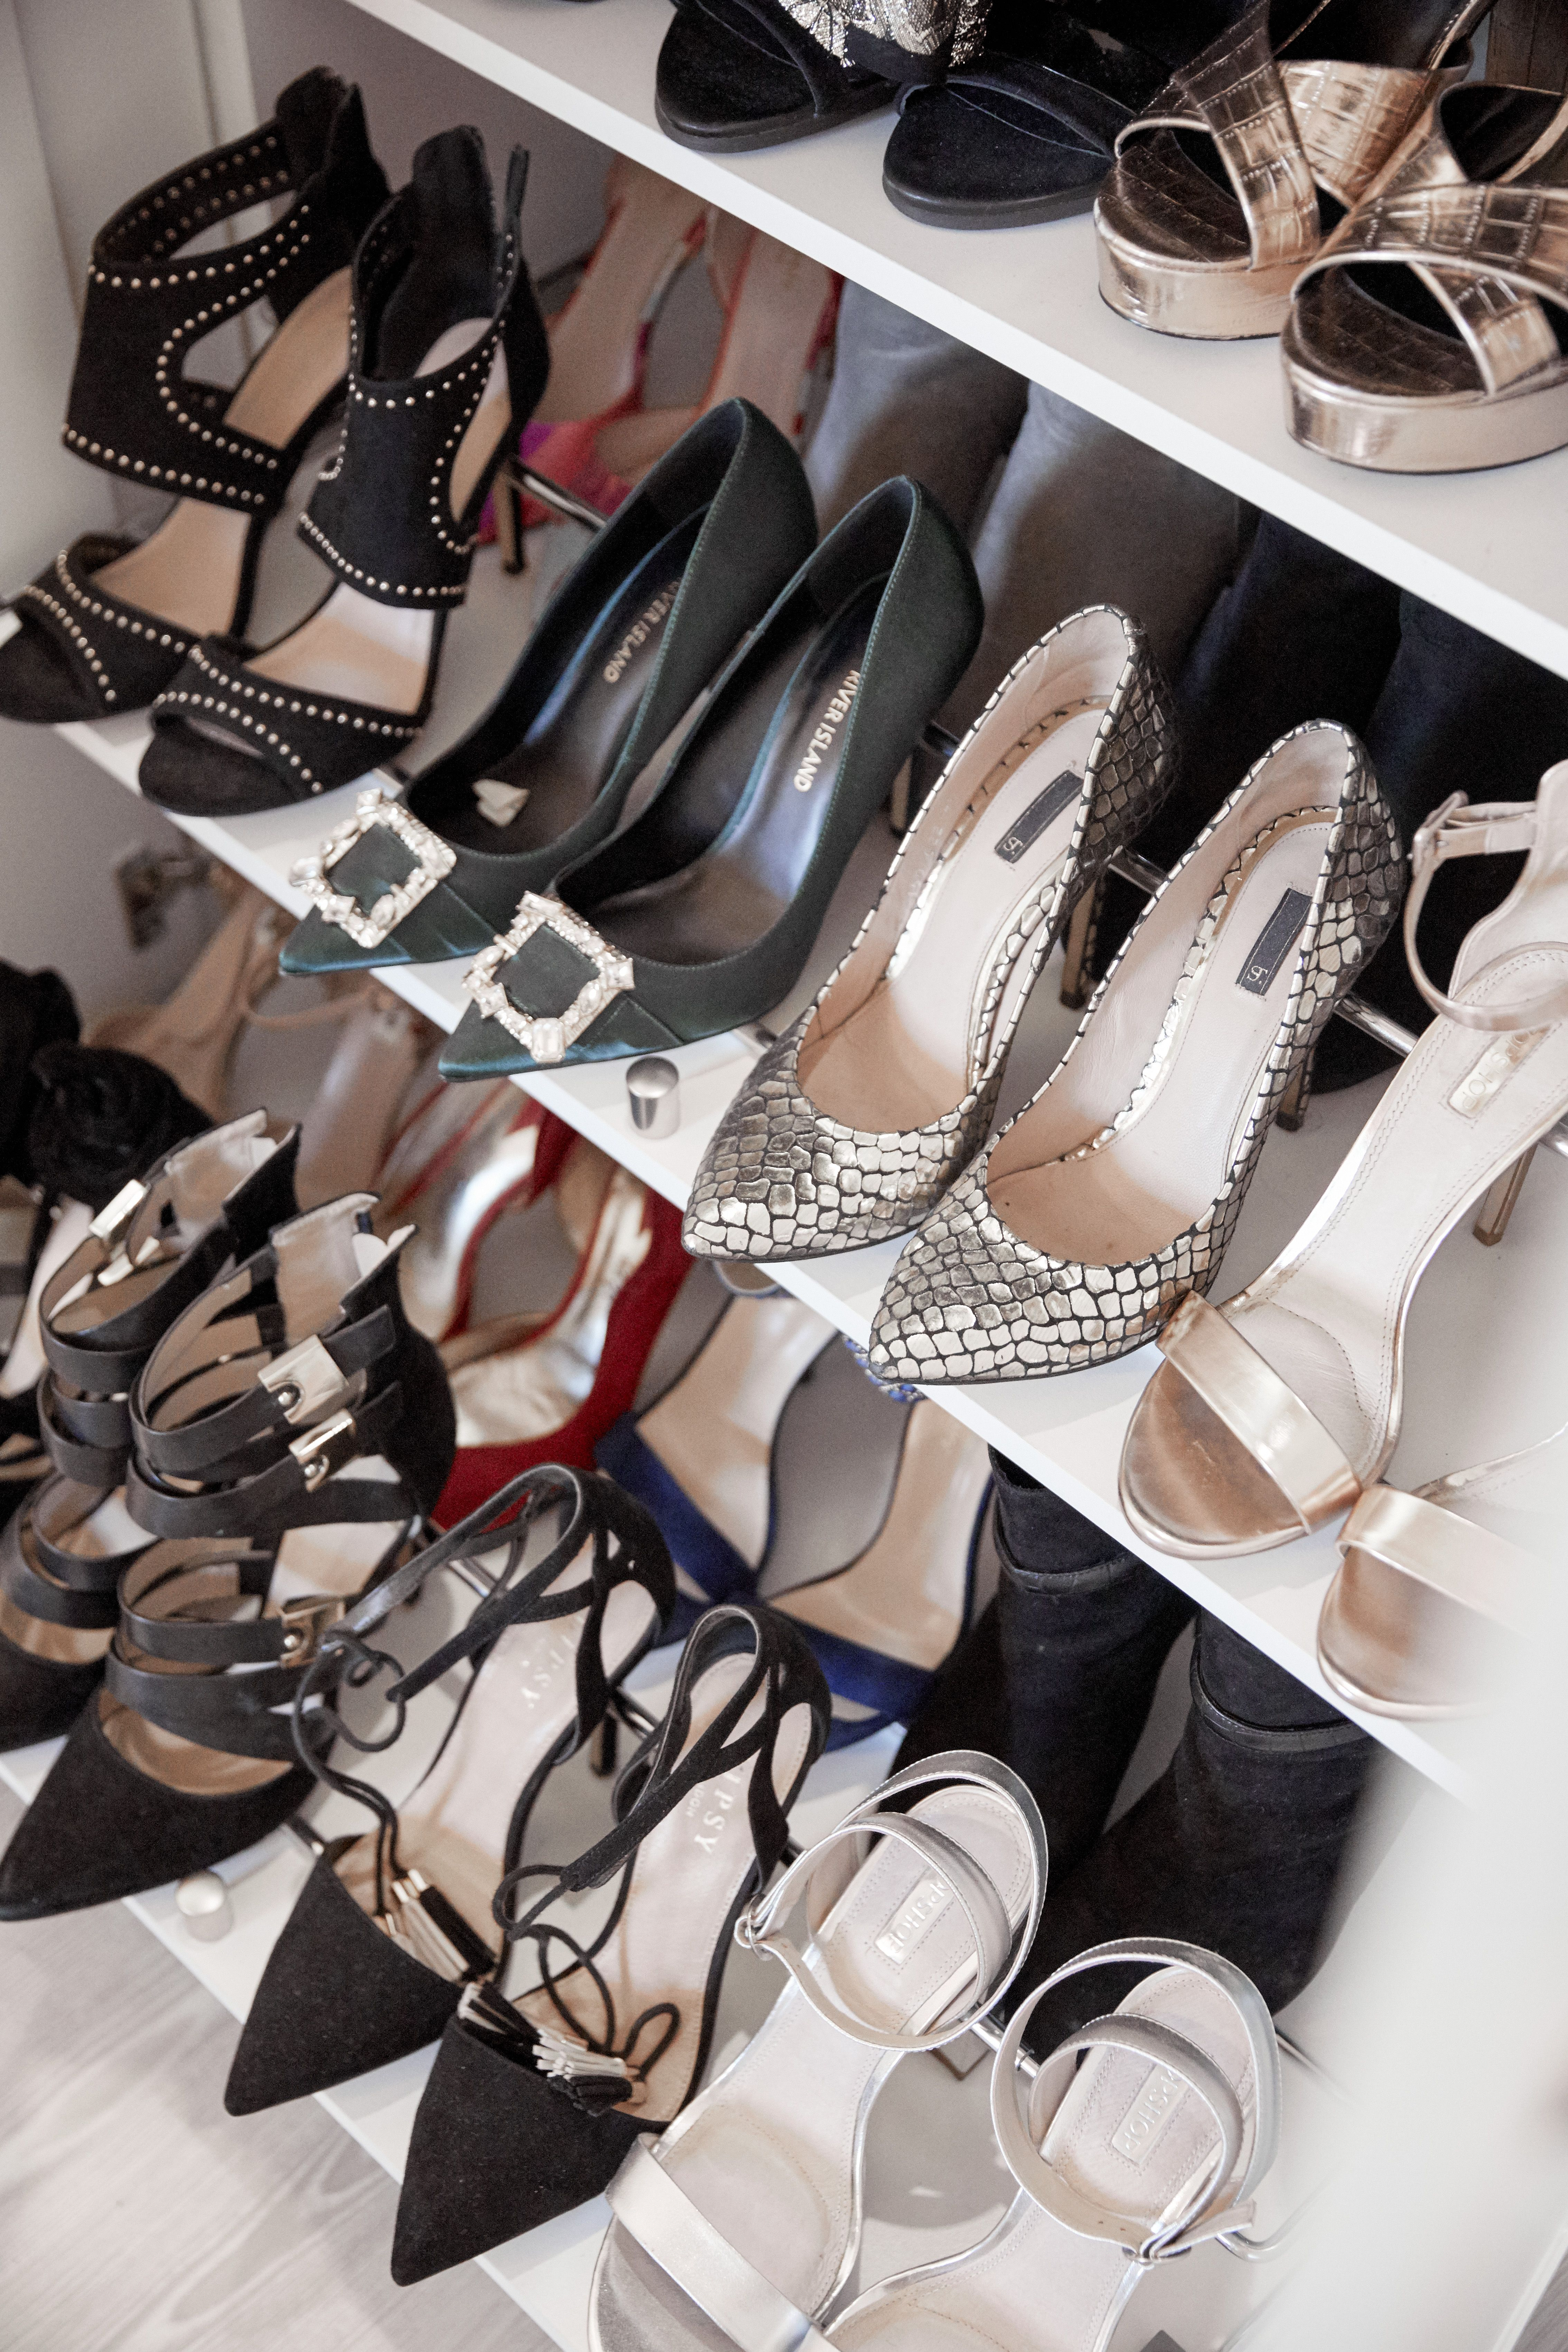 The most beautiful shoe collection on pull